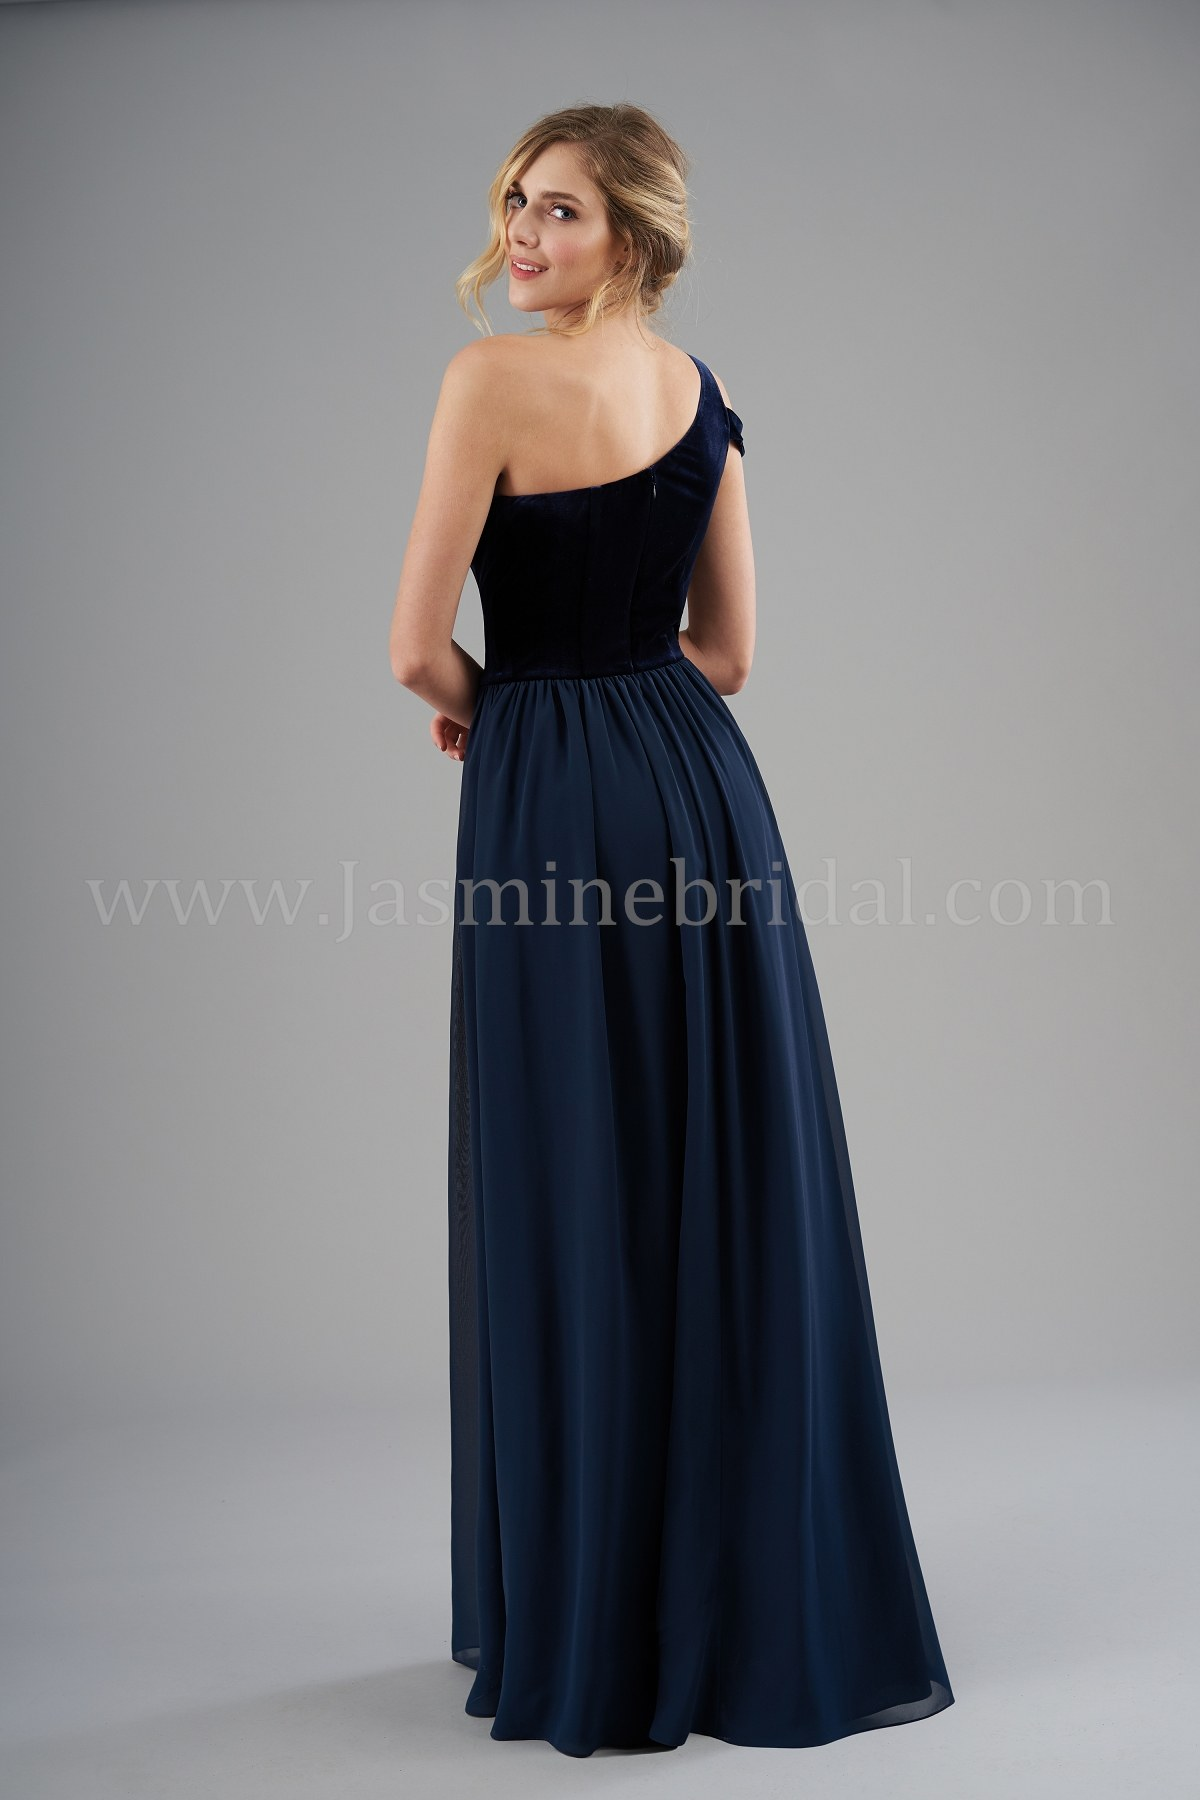 bridesmaid-dresses-B203066-B